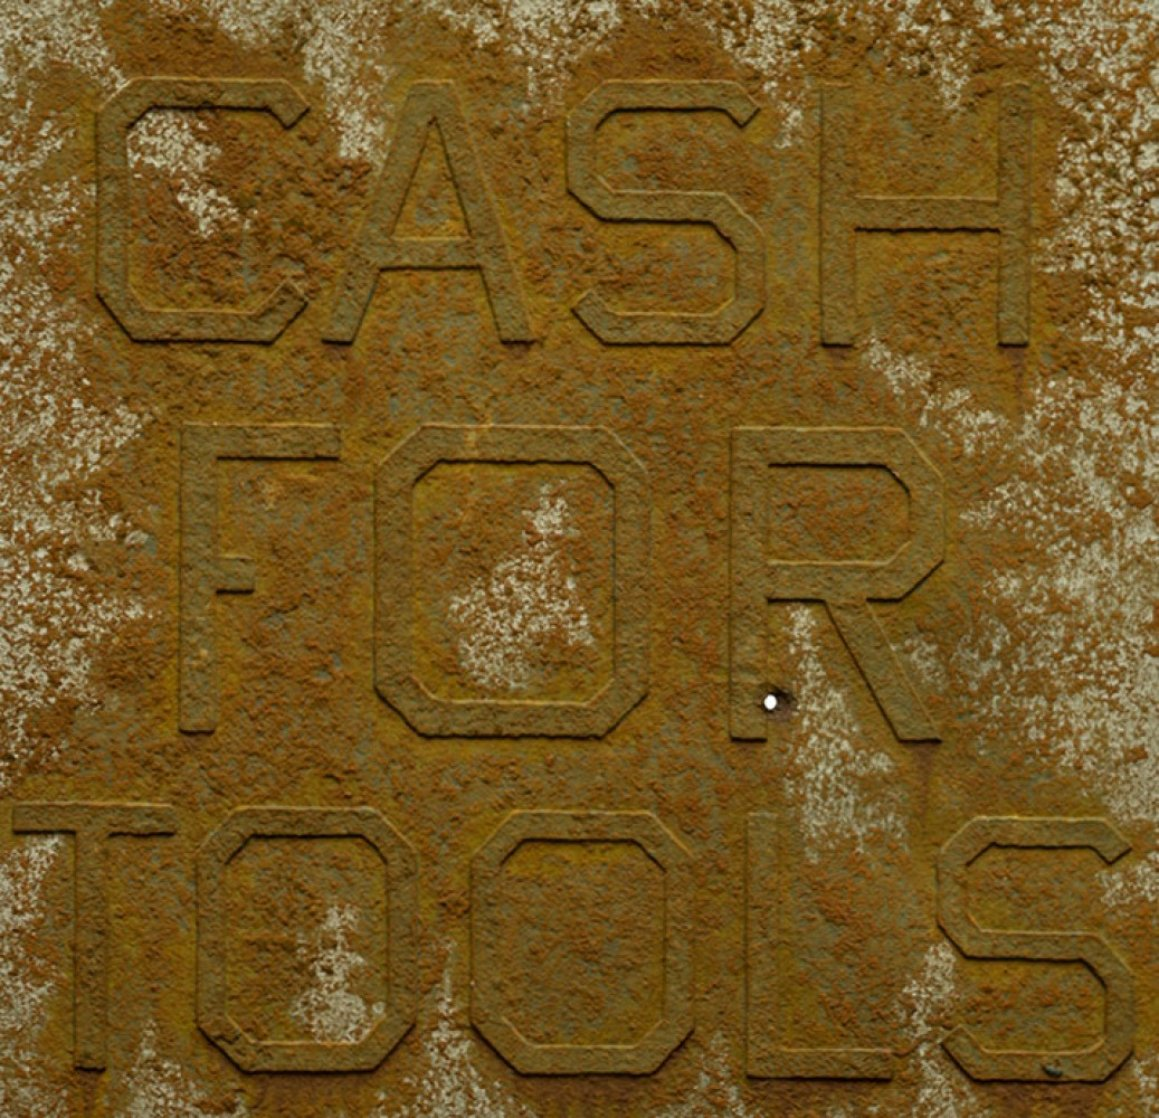 Cash For Tools #2, From Rusty Signs 2014 Limited Edition Print by Edward Ruscha